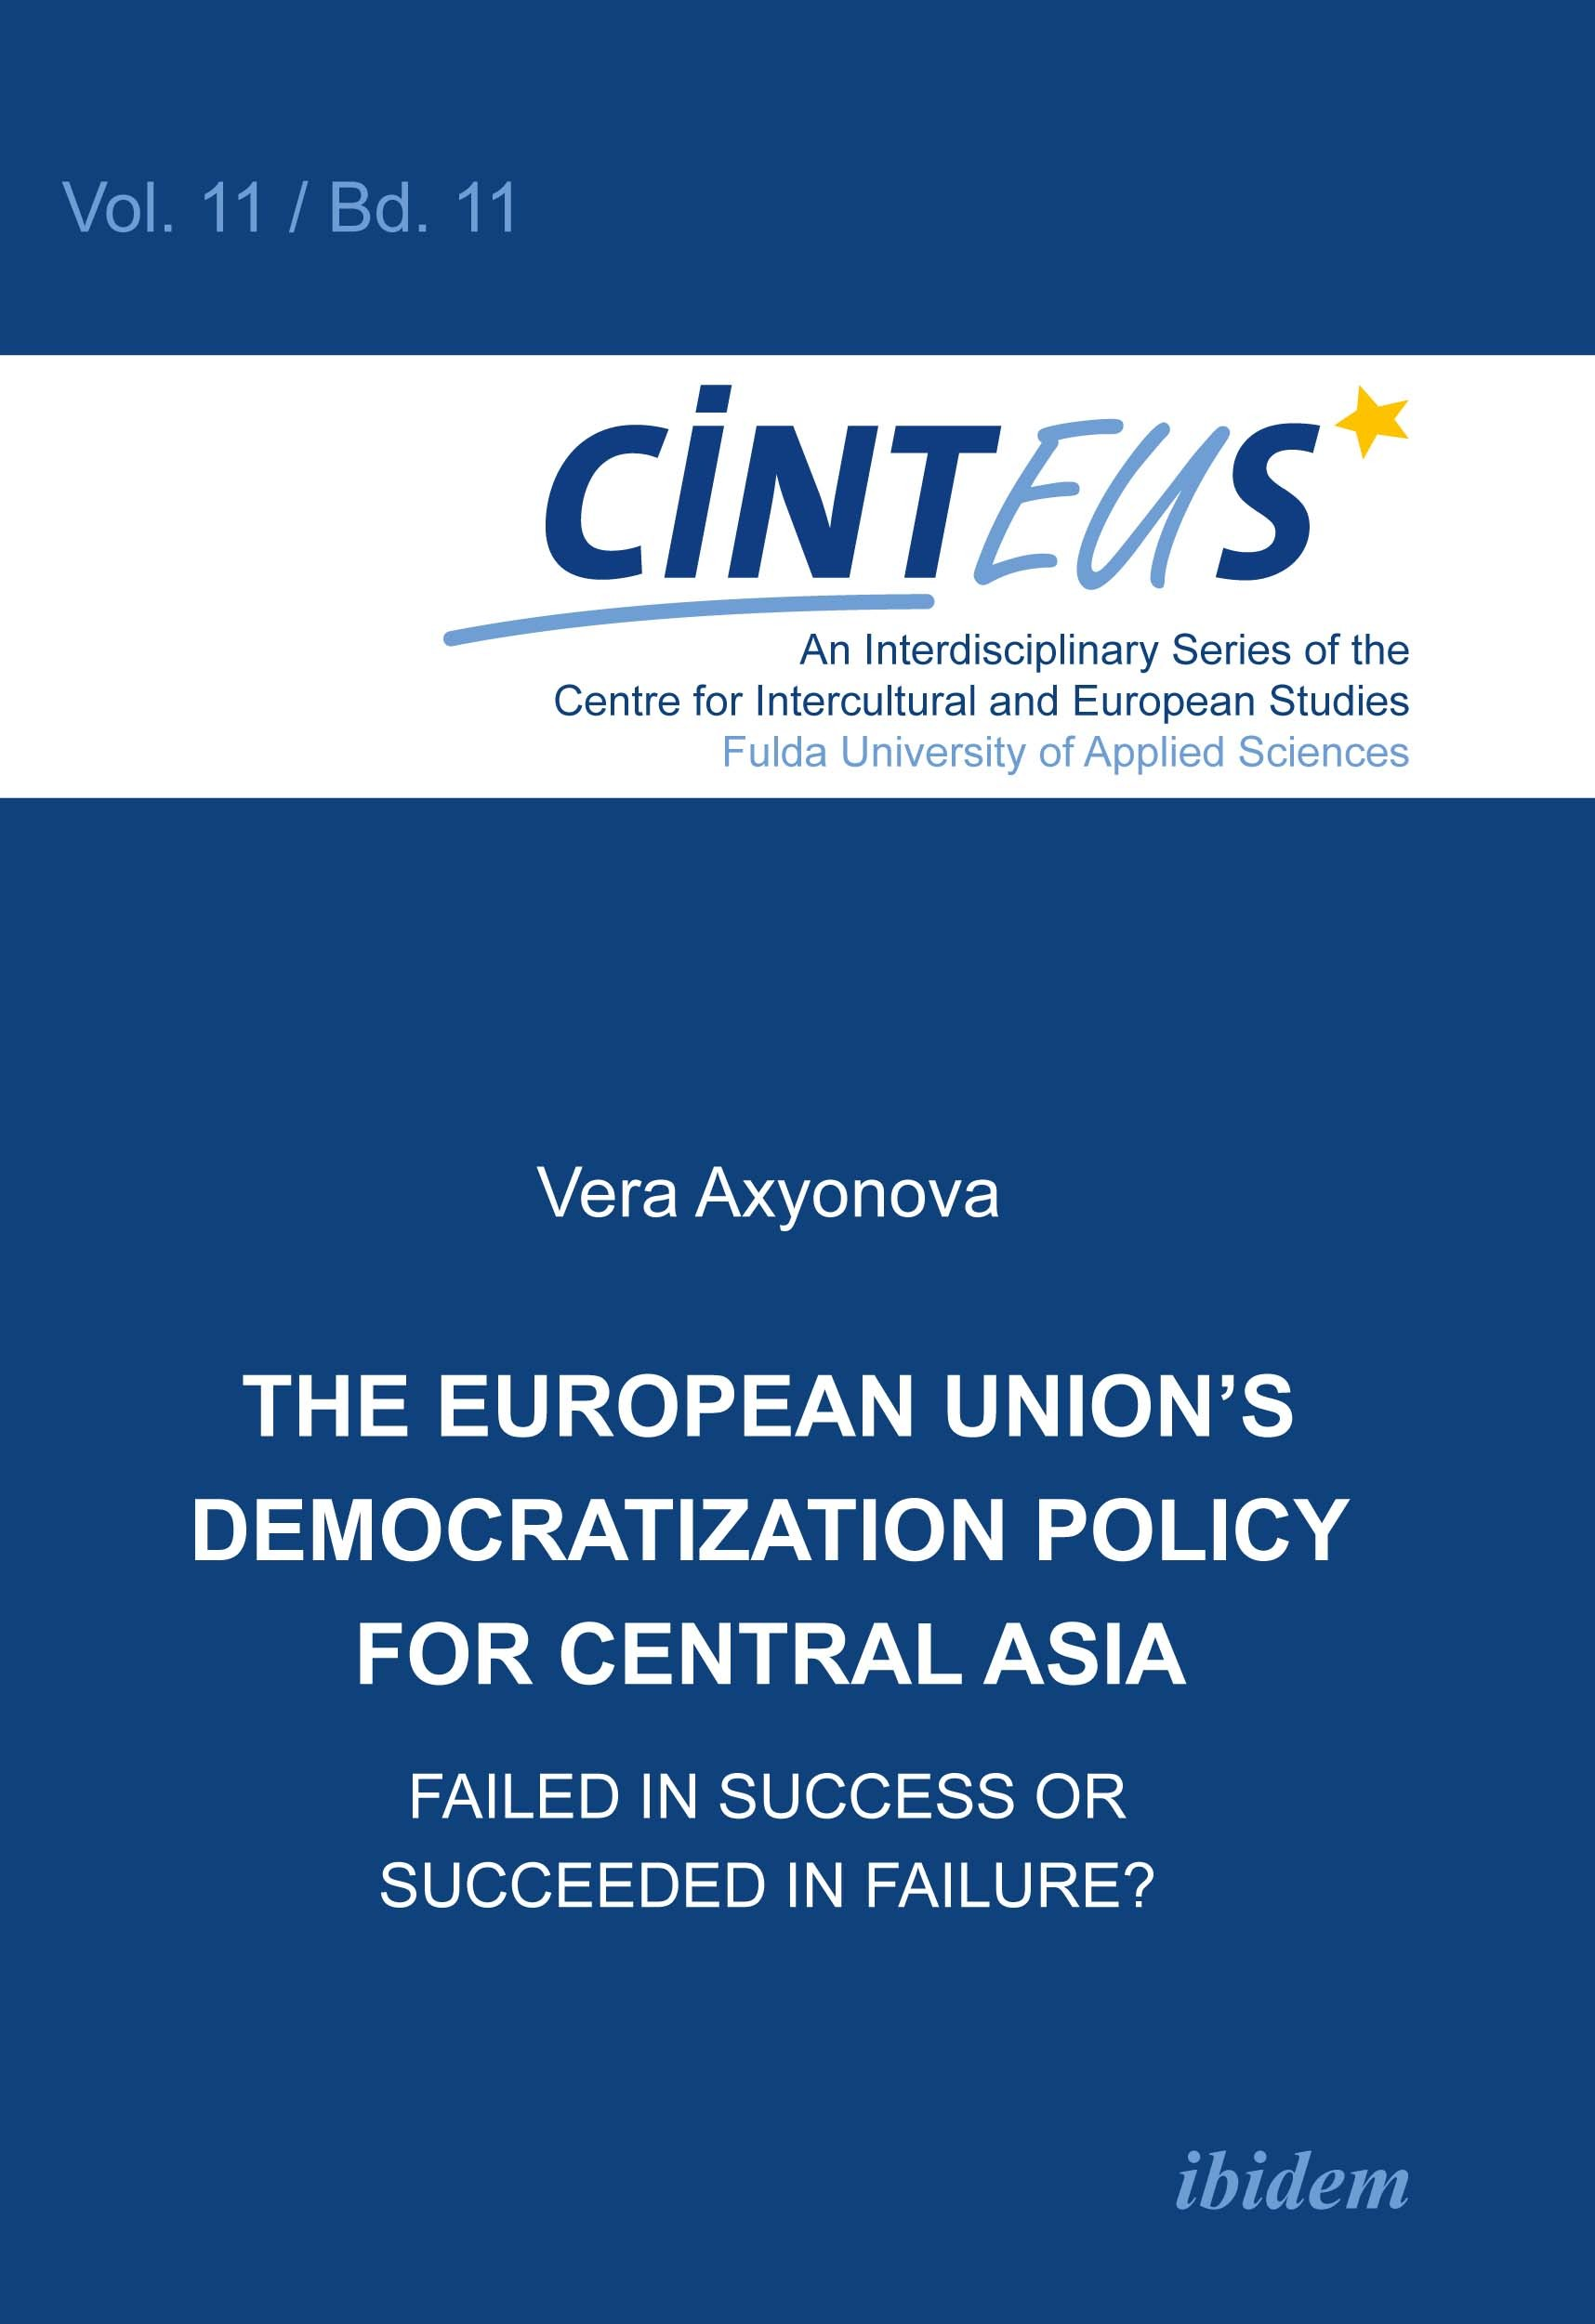 The European Union's Democratization Policy for Central Asia: